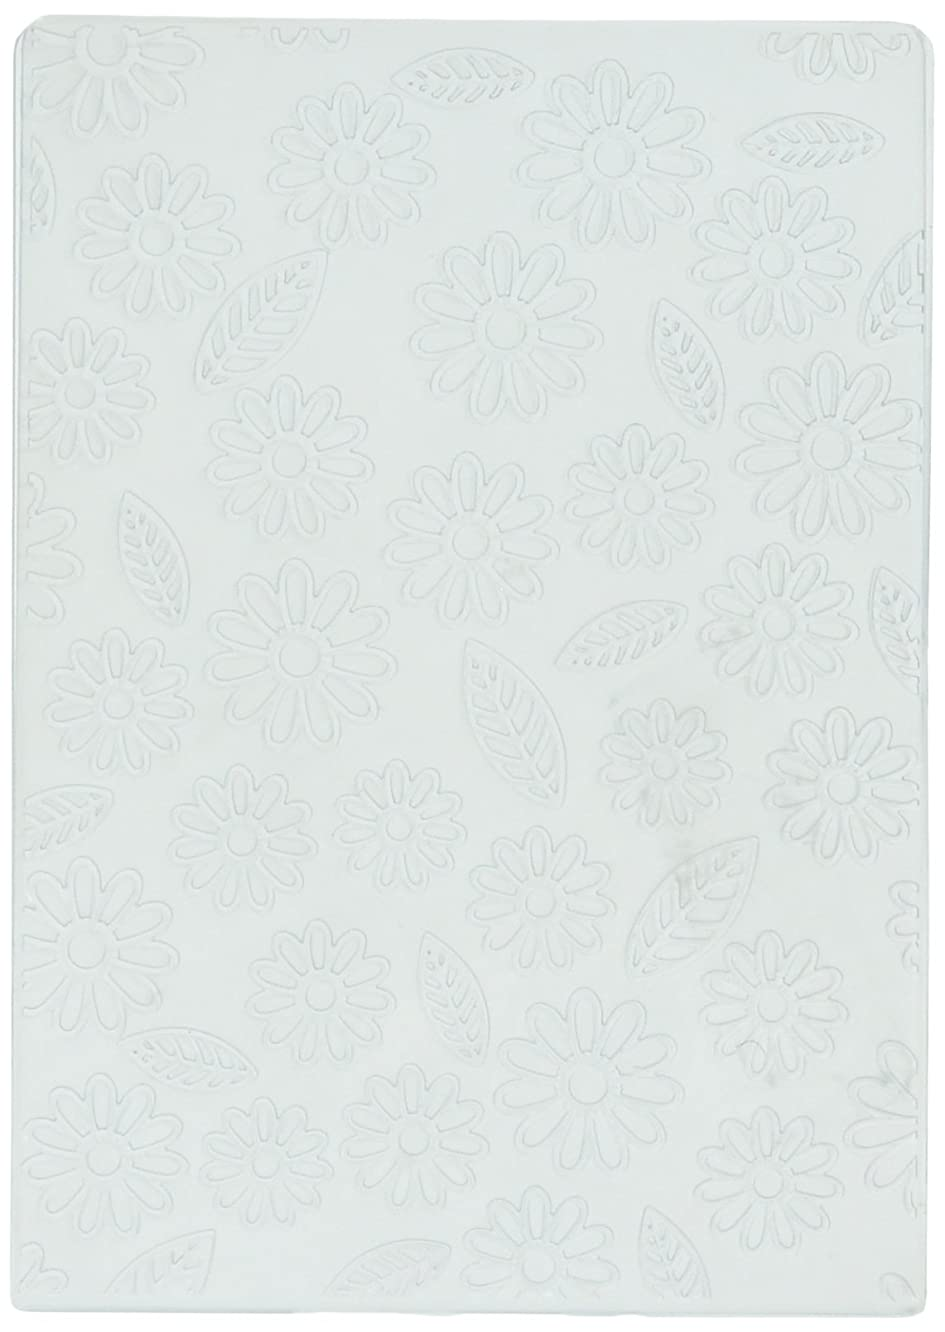 Nellie's Choice Embossing Folders, Flowers and Leaves